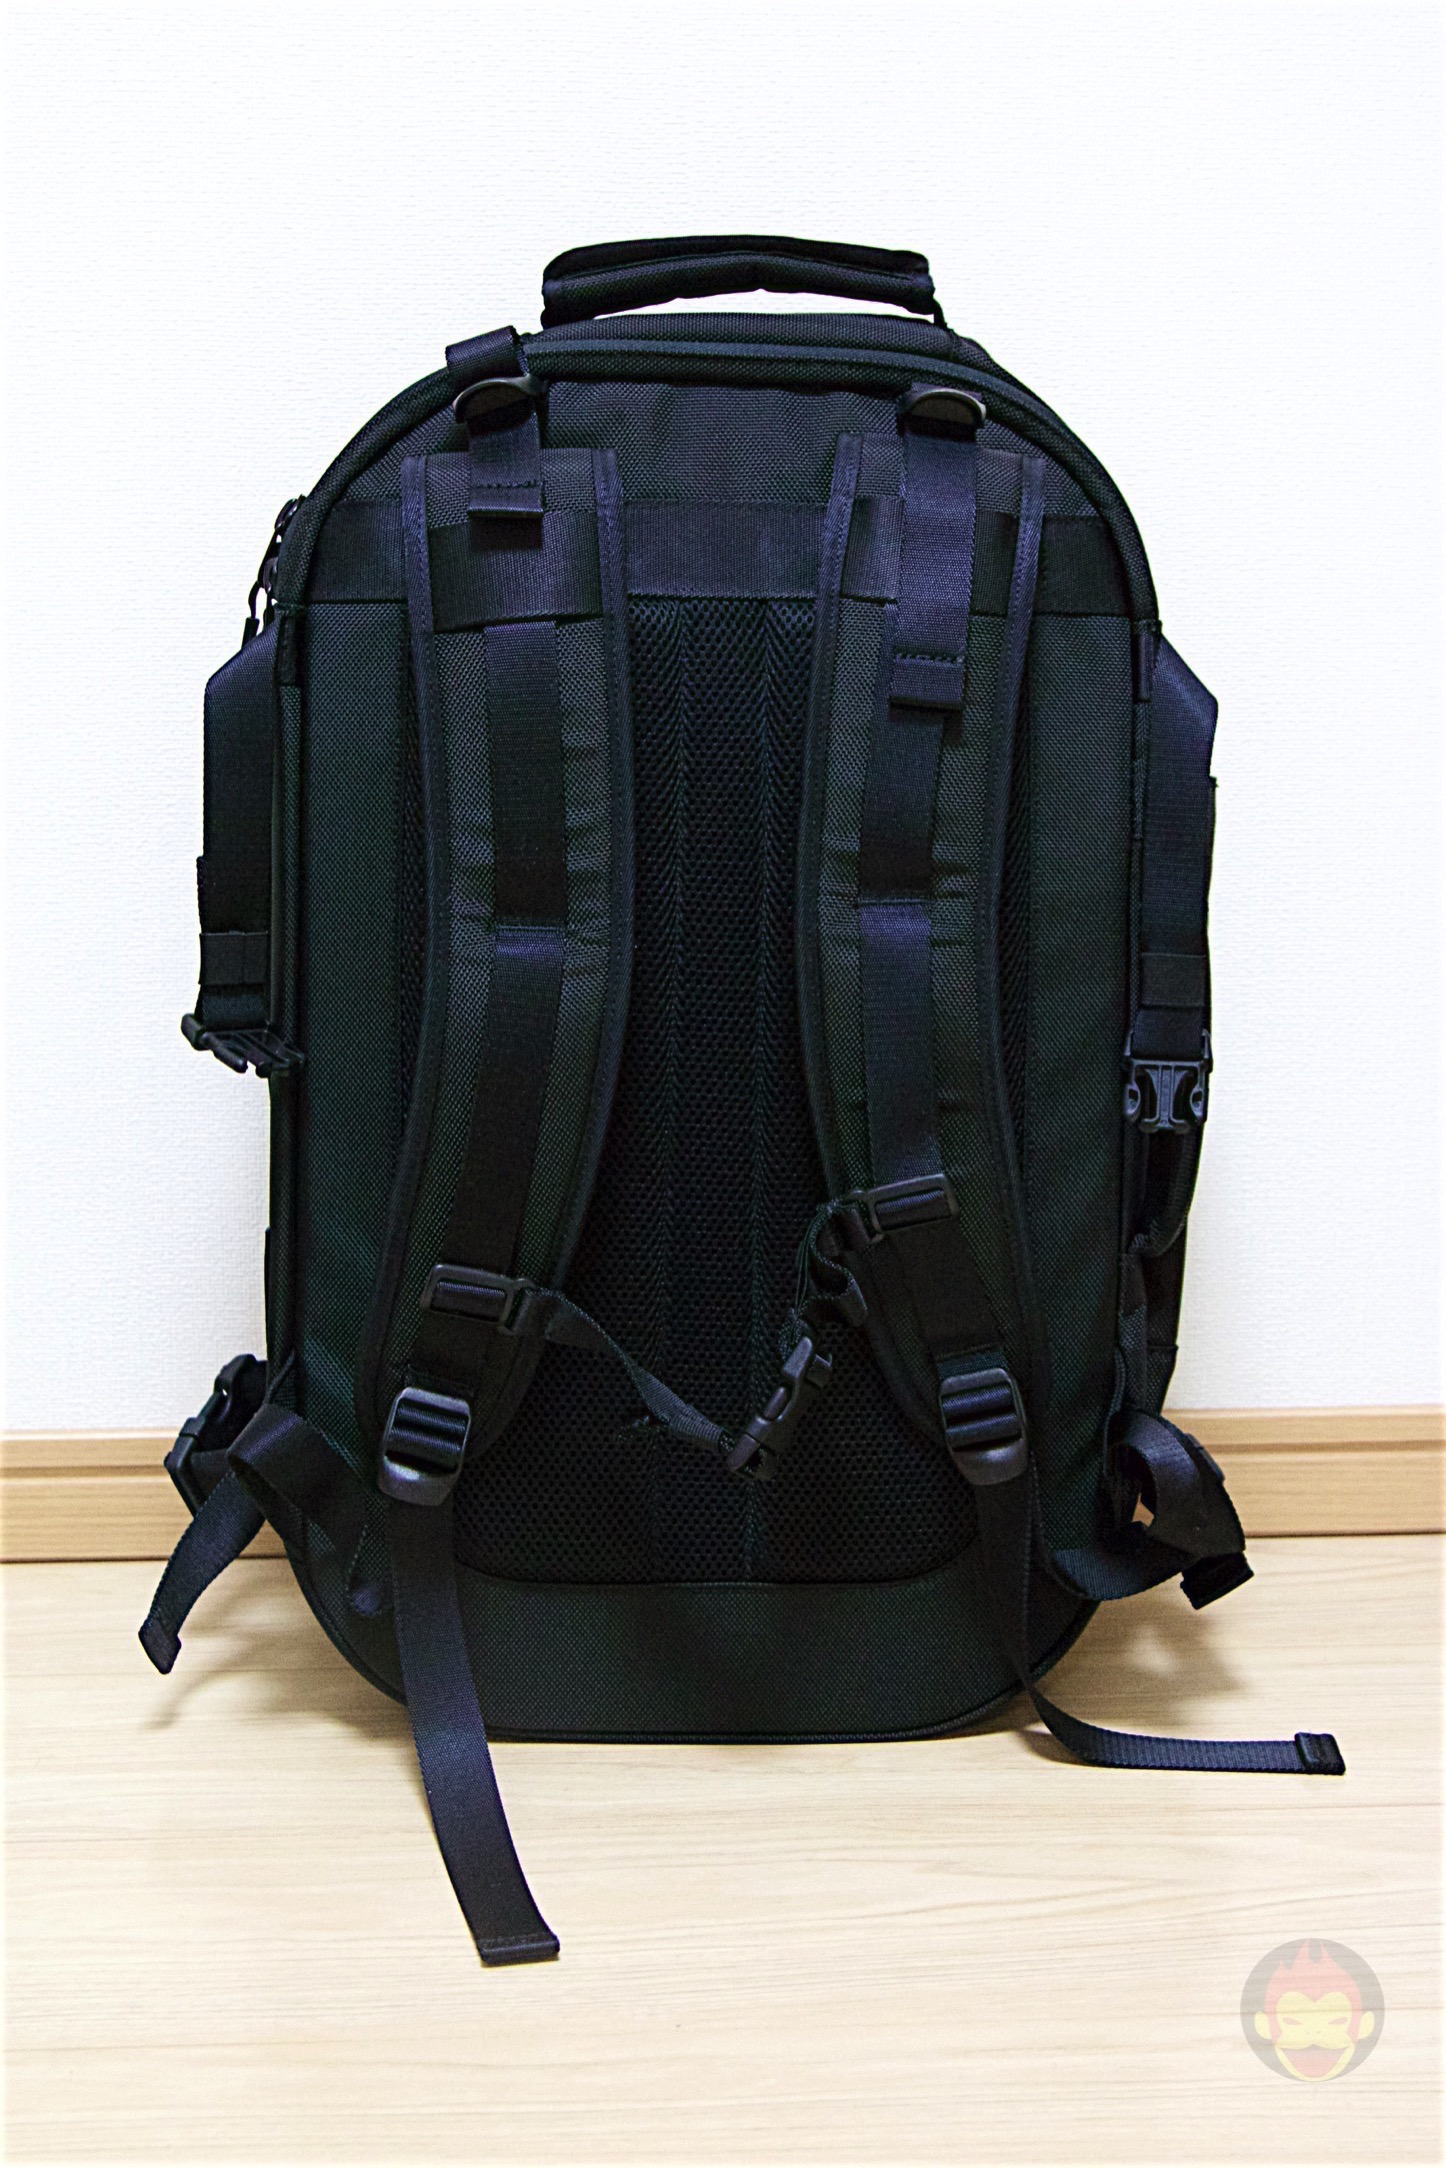 Aer-Travel-BackPack-on-Kickstarter-11.jpg